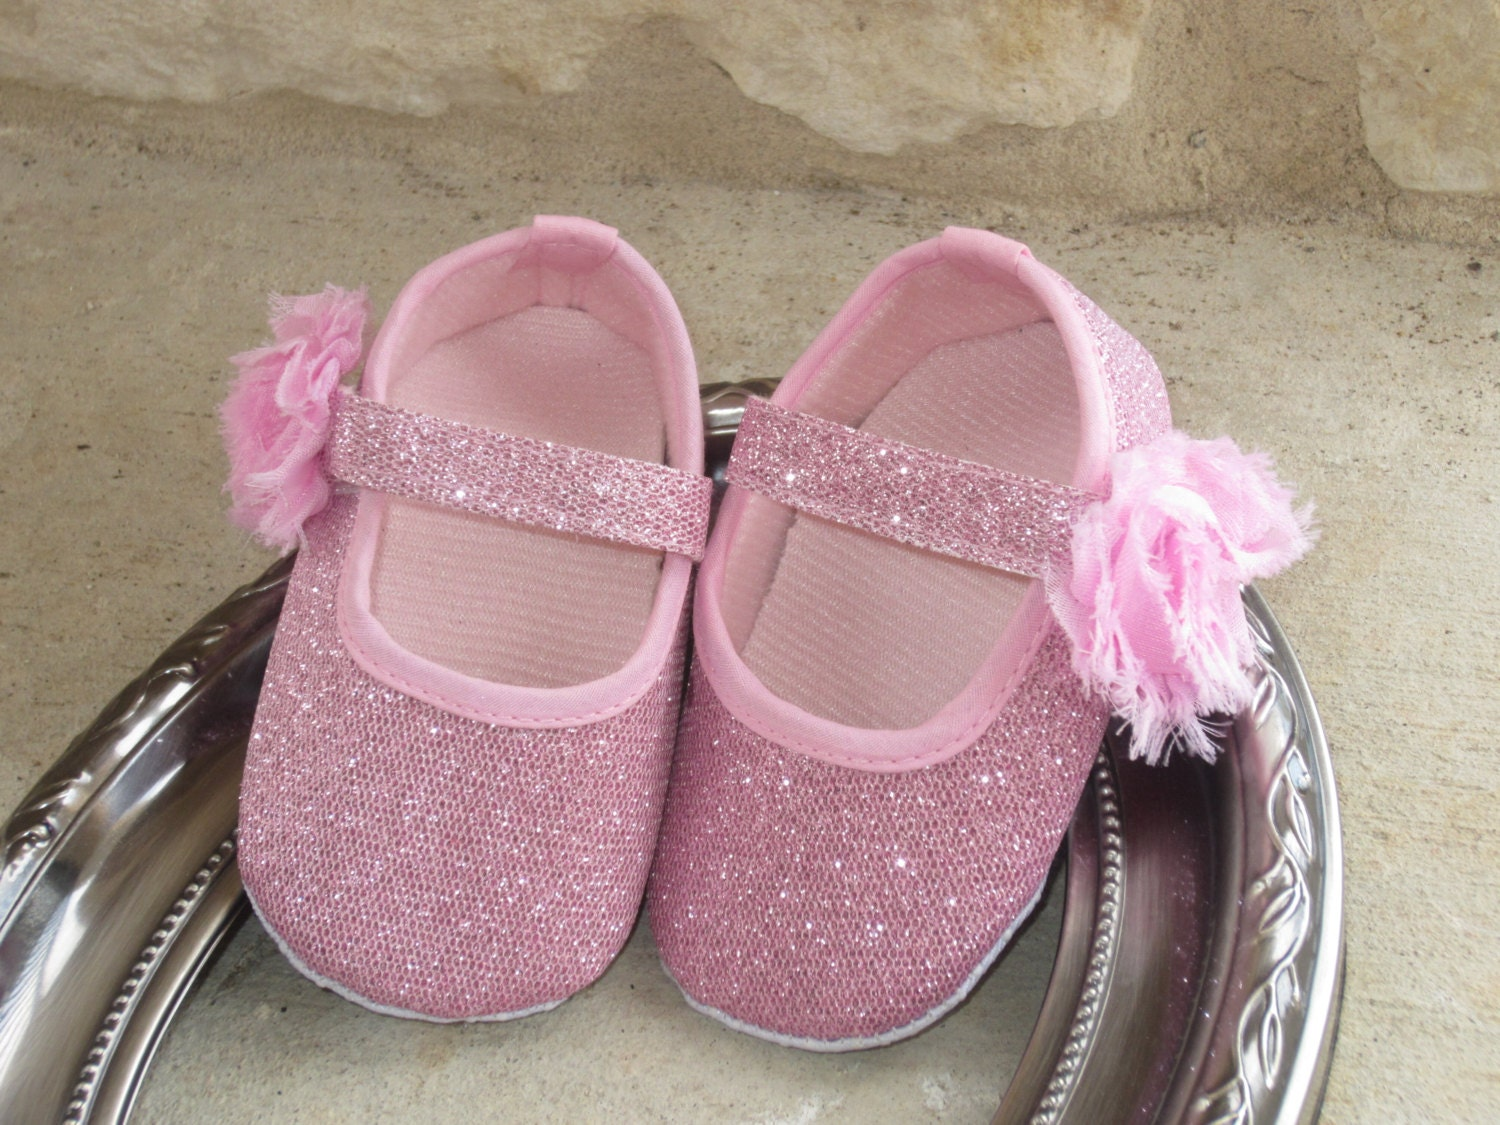 Baby shoes - deals on 1001 Blocks